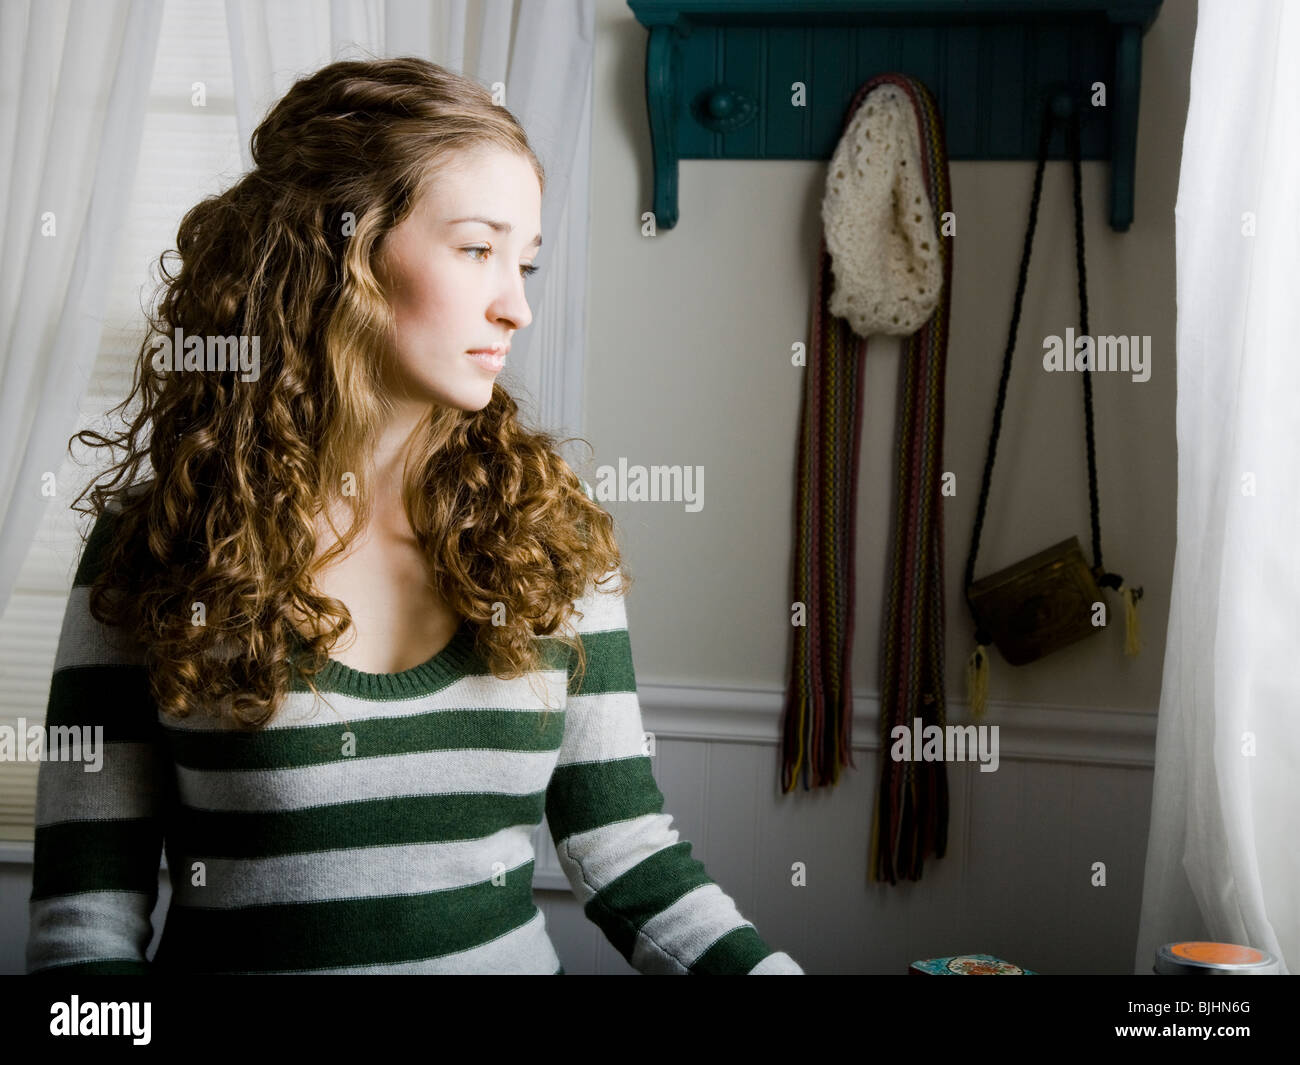 woman sitting in her bedroom next to a window - Stock Image